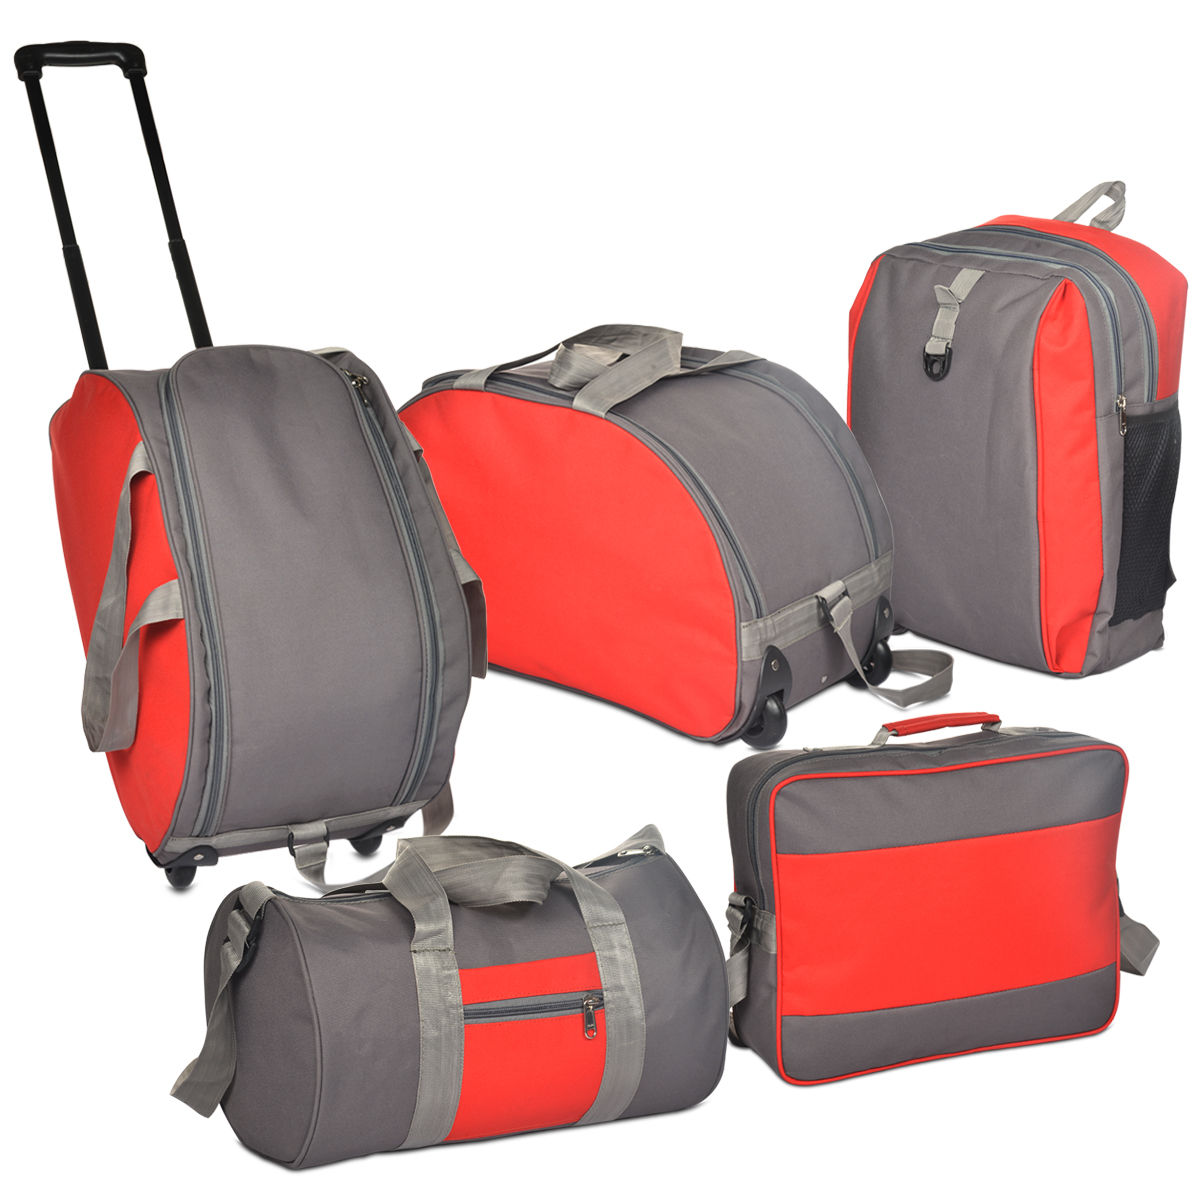 Buy Scottish Club 5 Multipurpose Travel Bags - New Online at Best ...